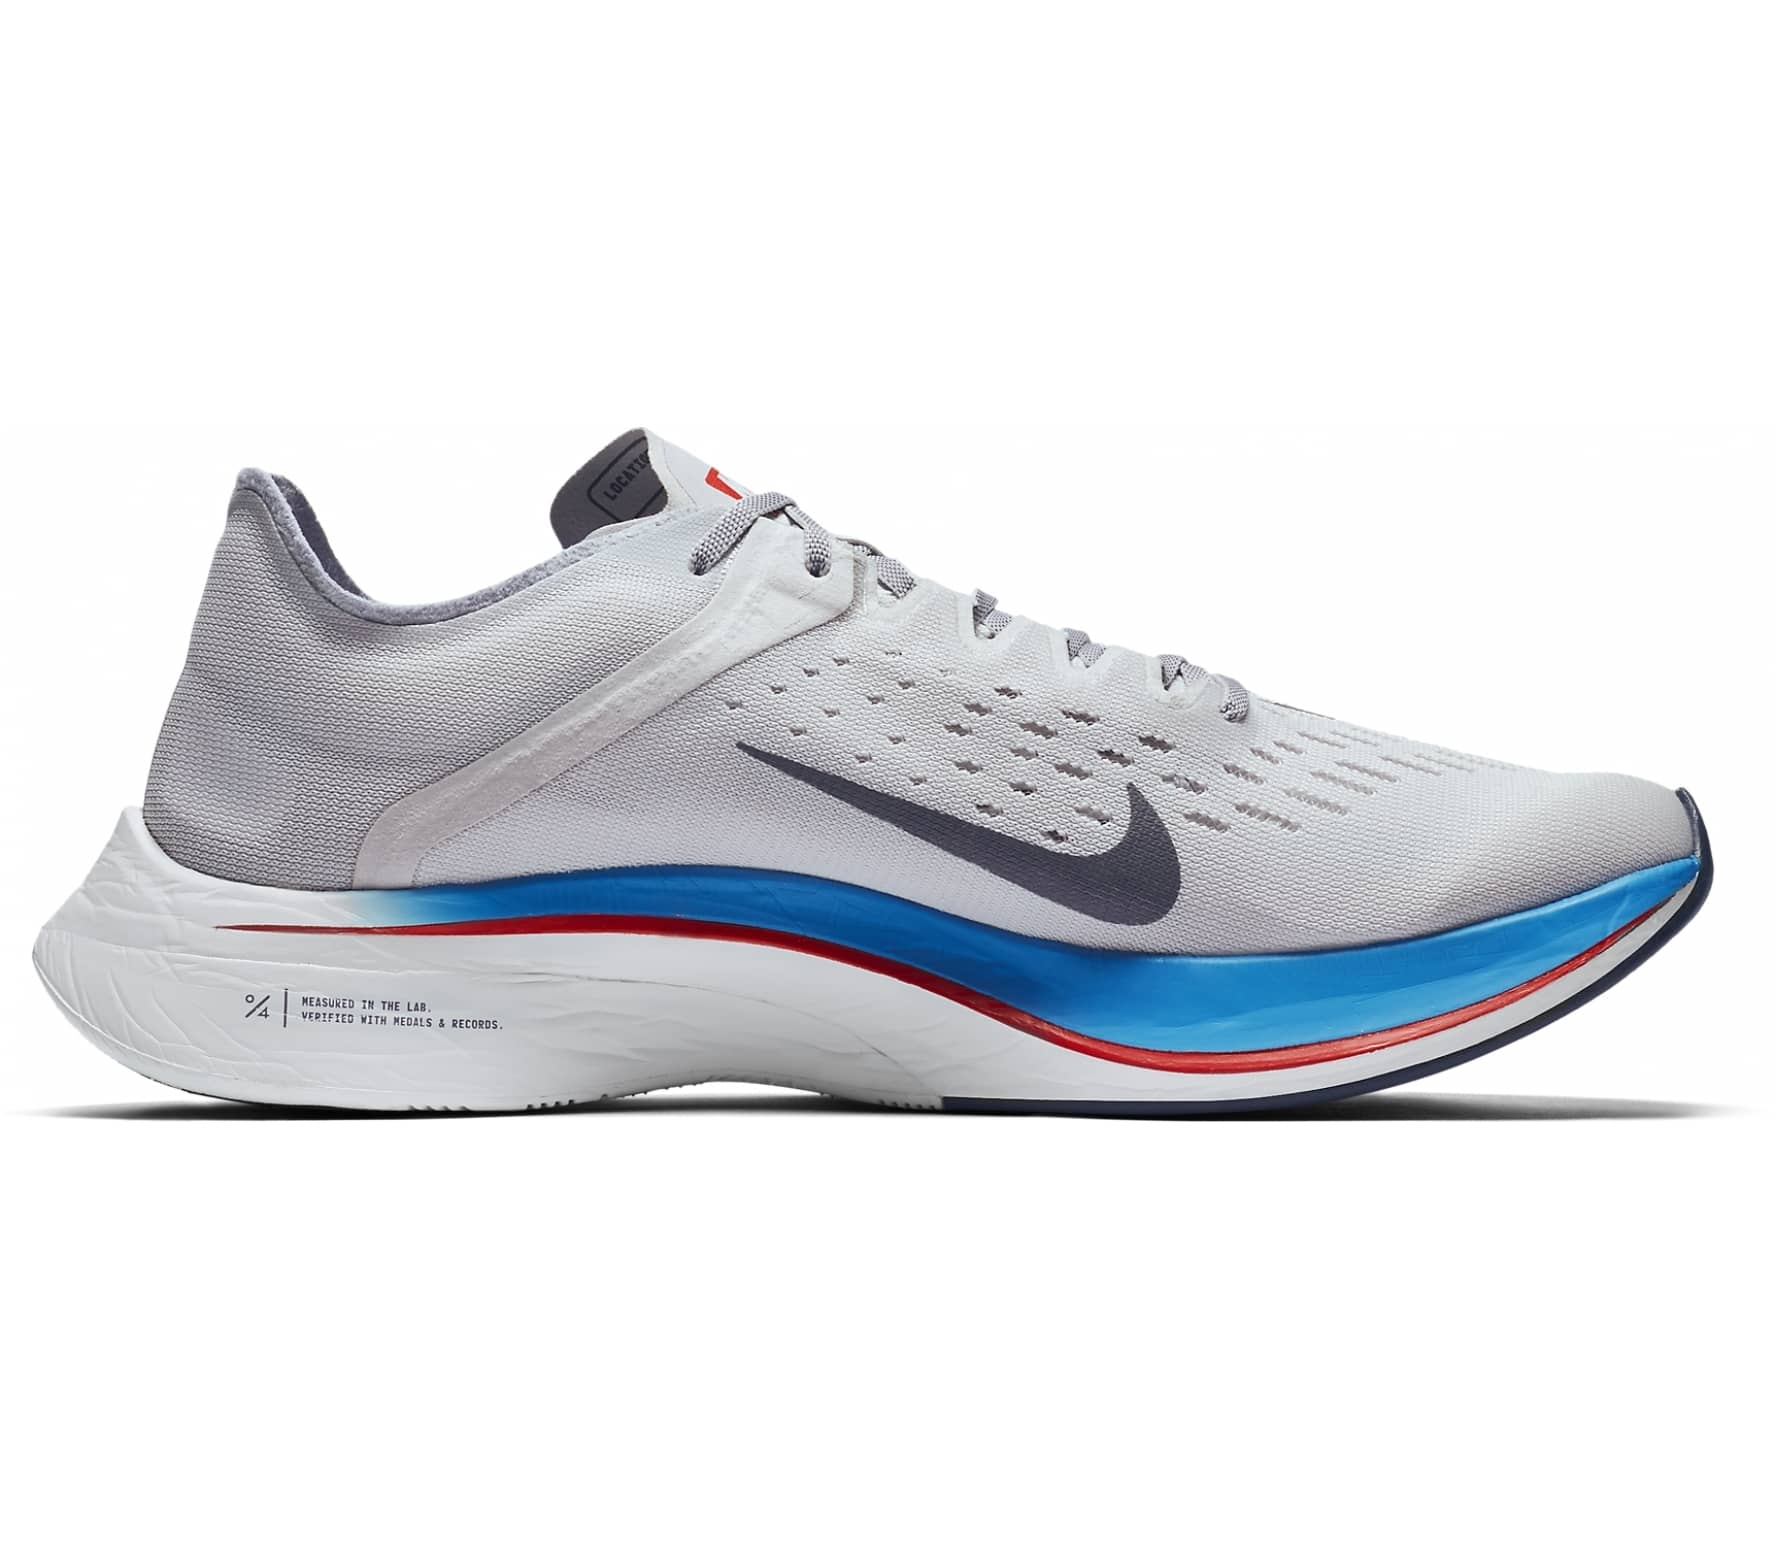 9ede7eff1e450 Nike - Zoom Vaporfly 4% Unisex running shoes (grey) - buy it at the ...